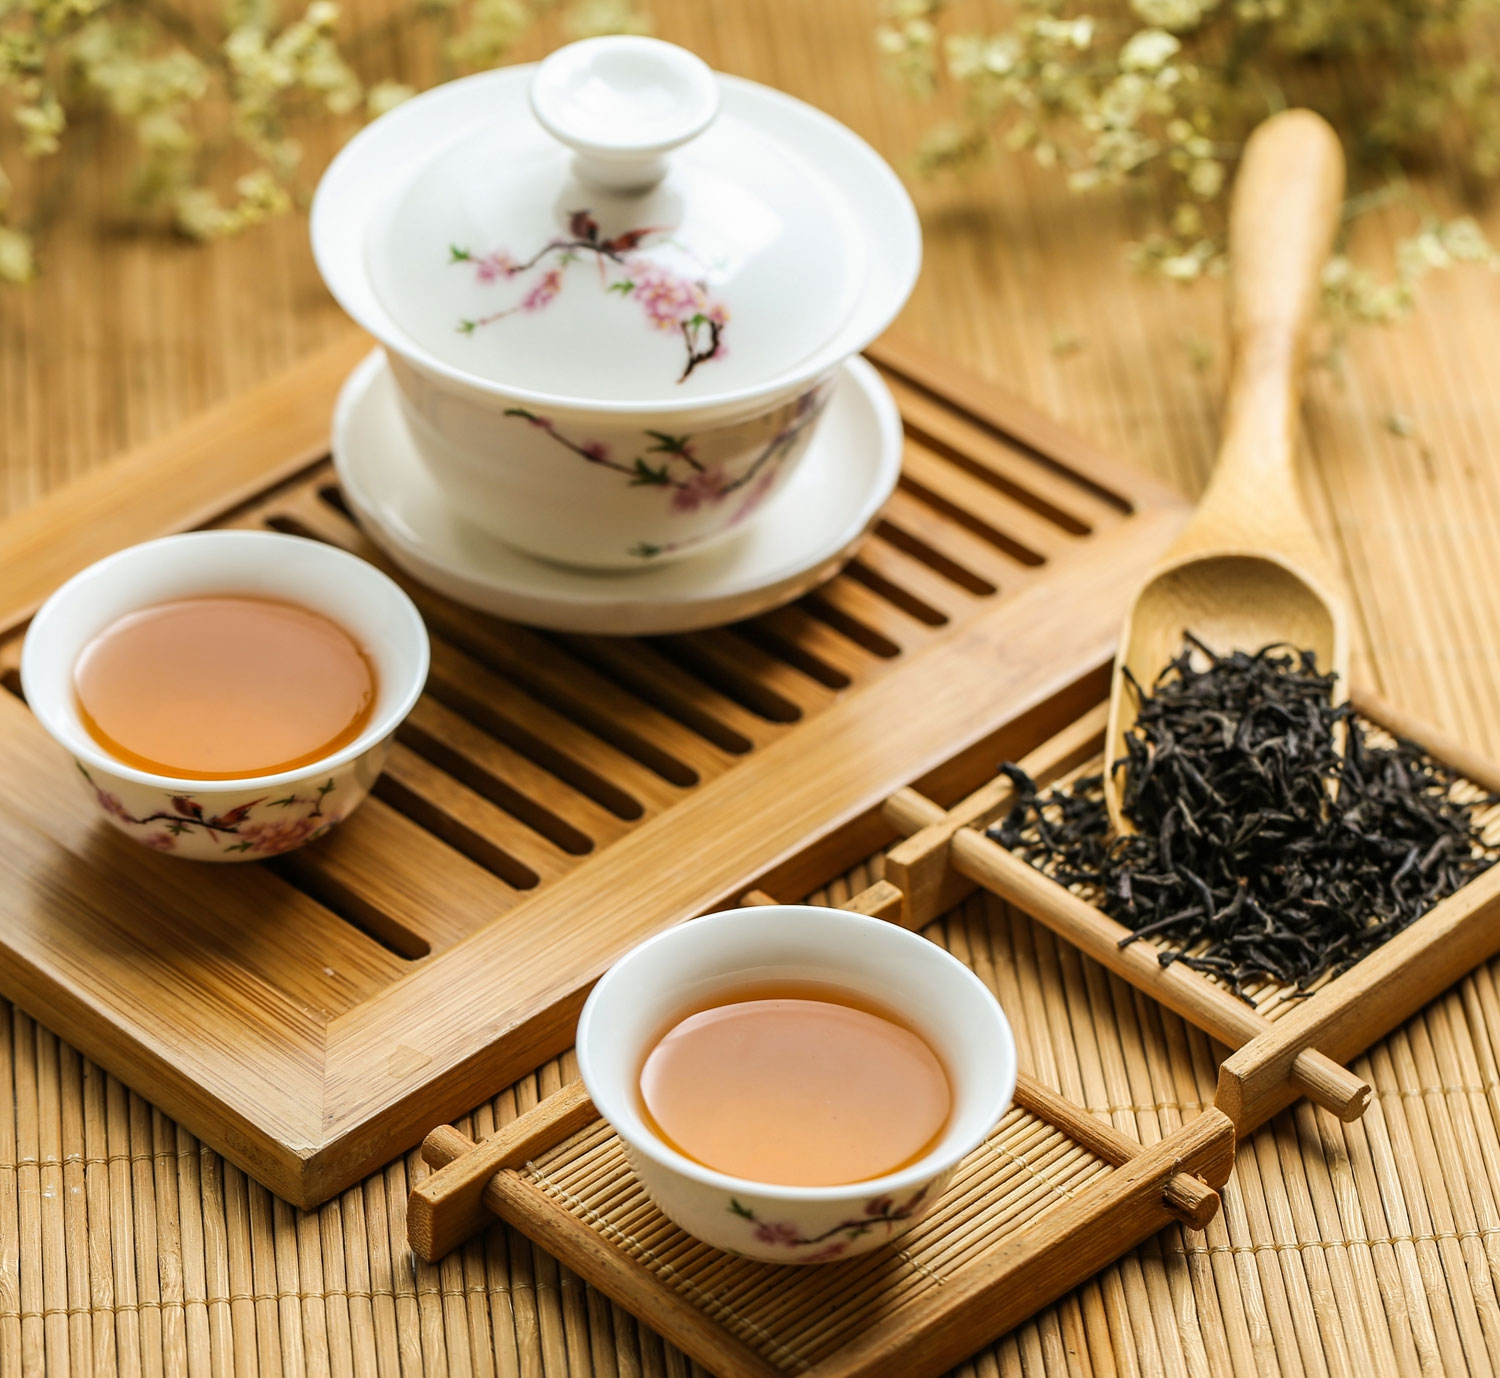 Tea Gains Market Share at Restaurants